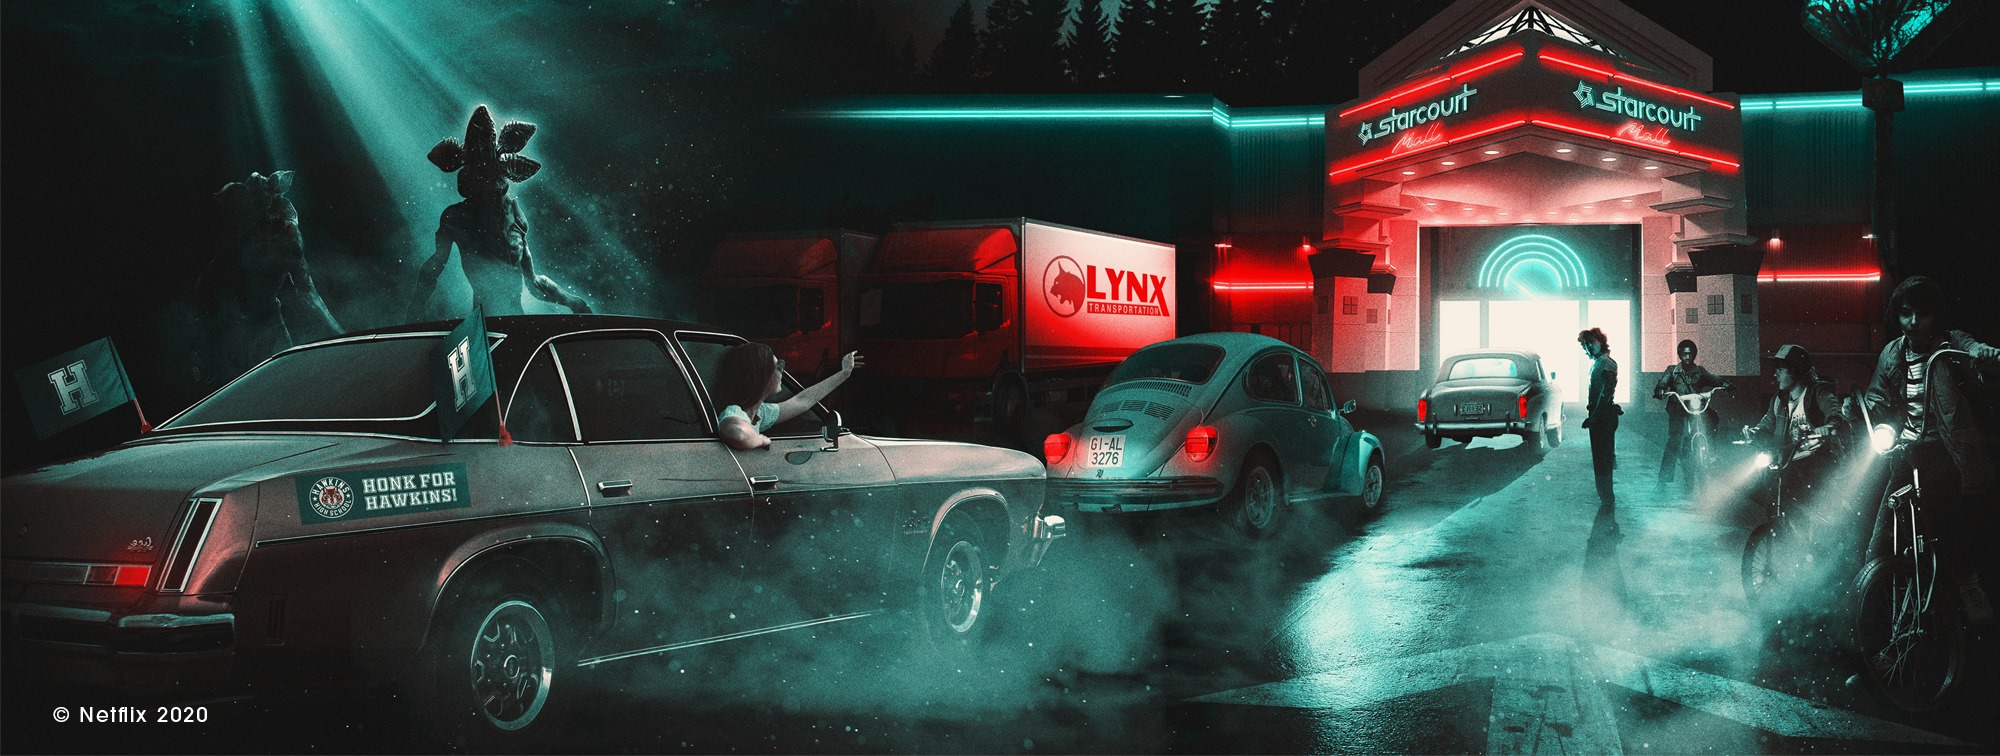 Stranger Things, Drive-into Experience, Starcourt Mall